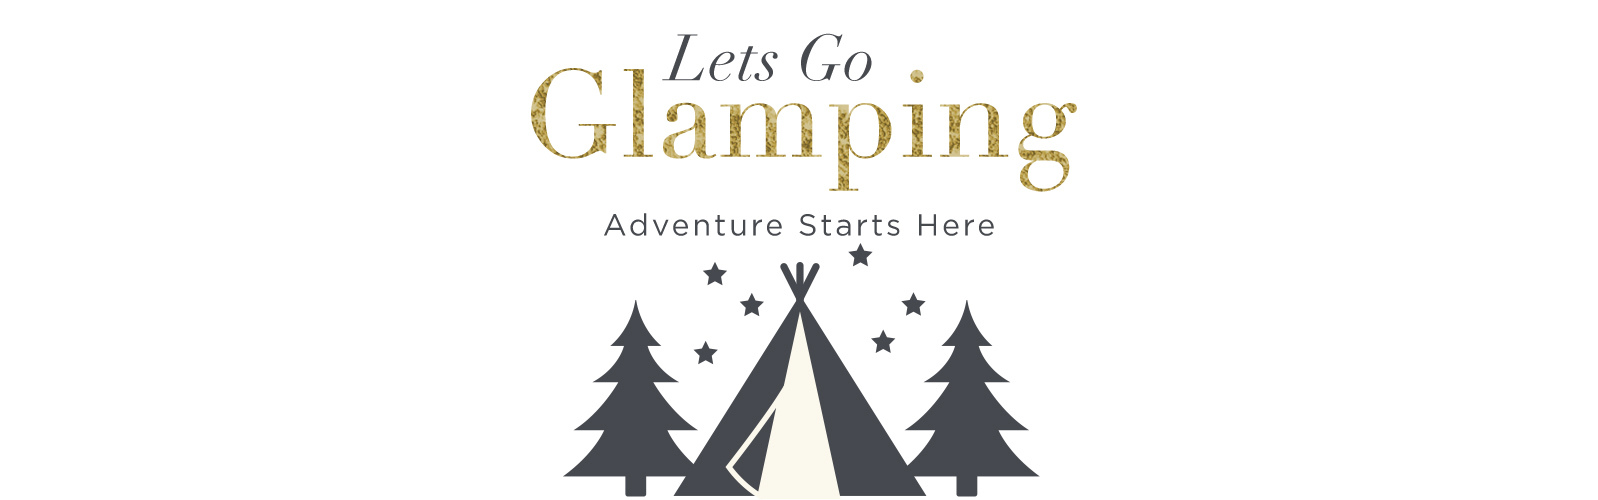 Let's Go Glamping! Your Adventure Begins Here